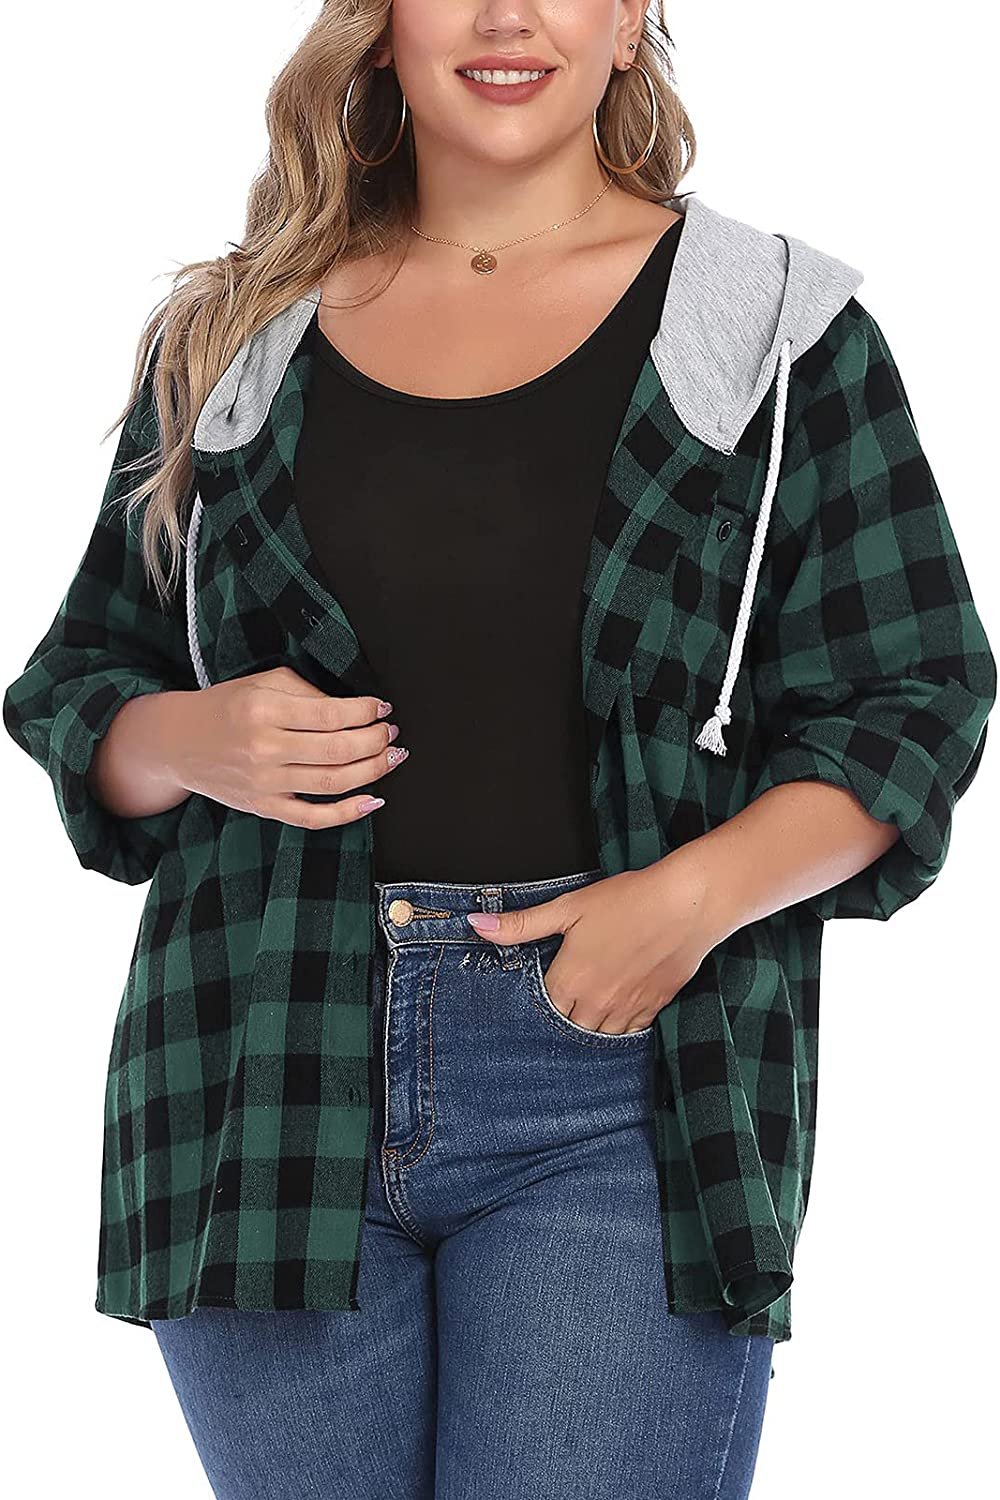 JPLZi Womens Plus Size Flannel Plaid Hoodie Long Sleeve Plaid Shirt Jacket with Hood Button Down Casual Shirts Blouse Tops